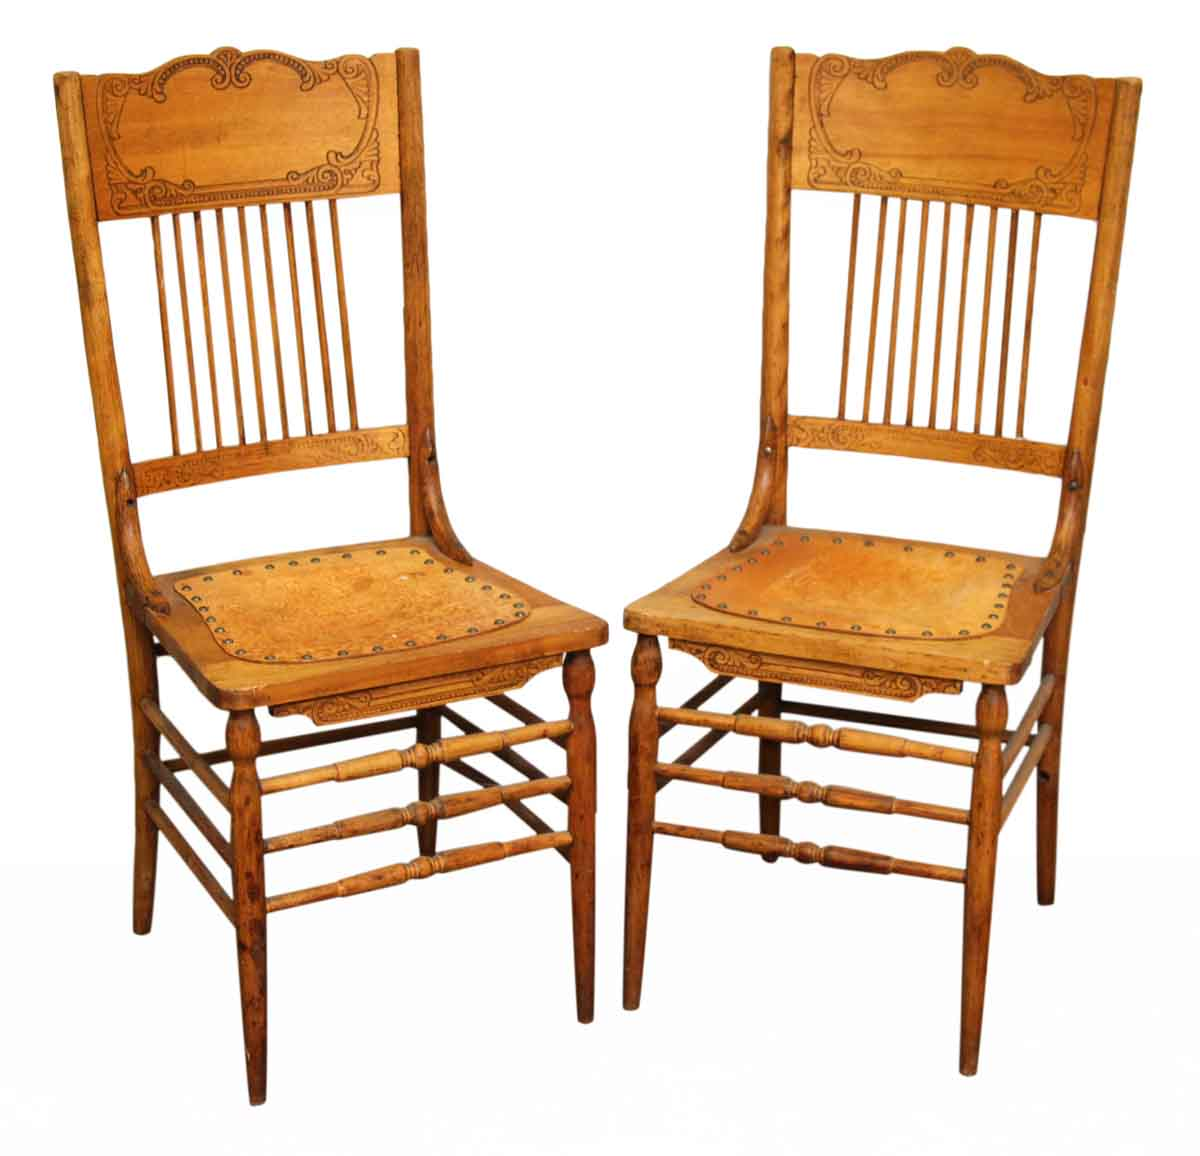 Antique Wooden Kitchen Chairs: Pair Of Leather & Wood Chairs